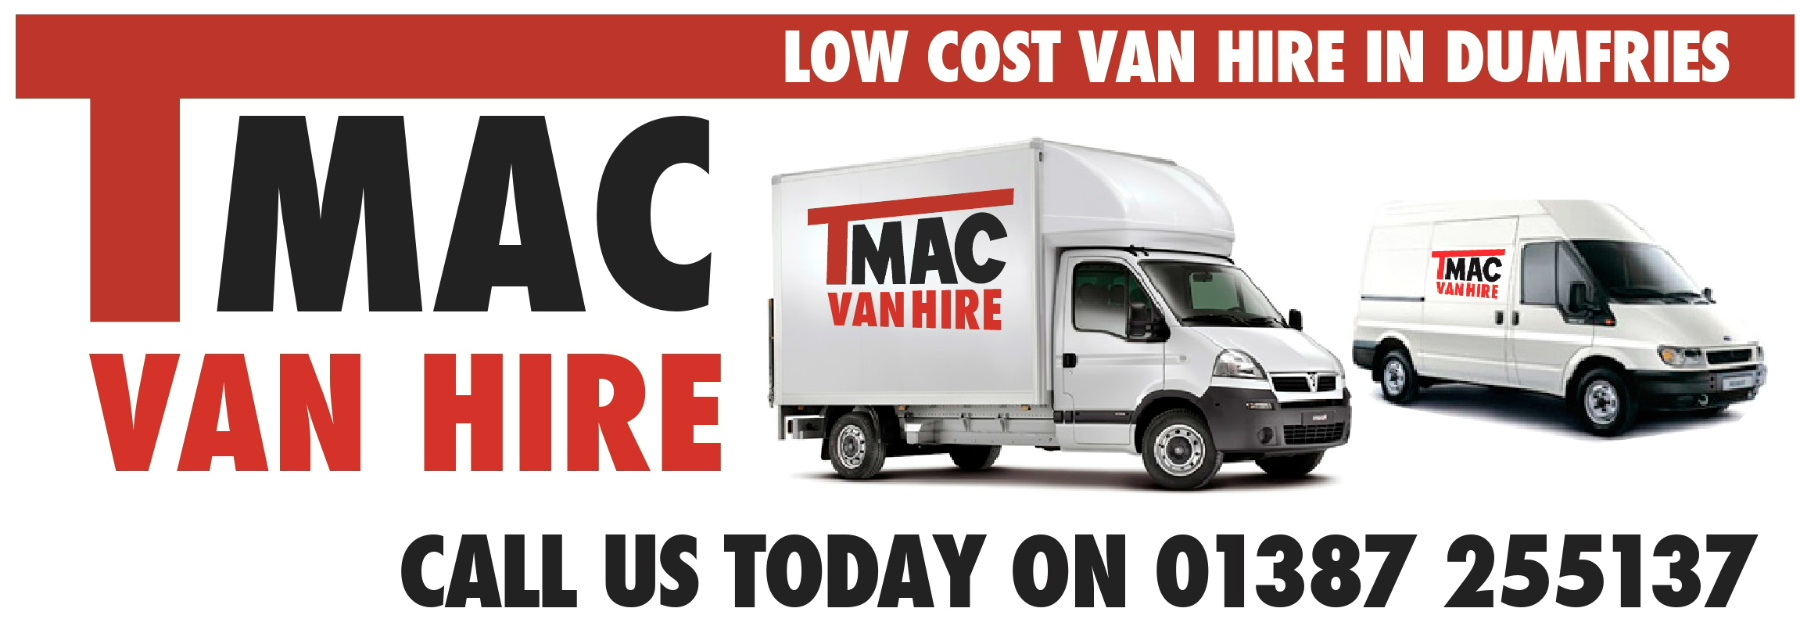 Dumfries Van Hire Rental company T Mac Van Hire